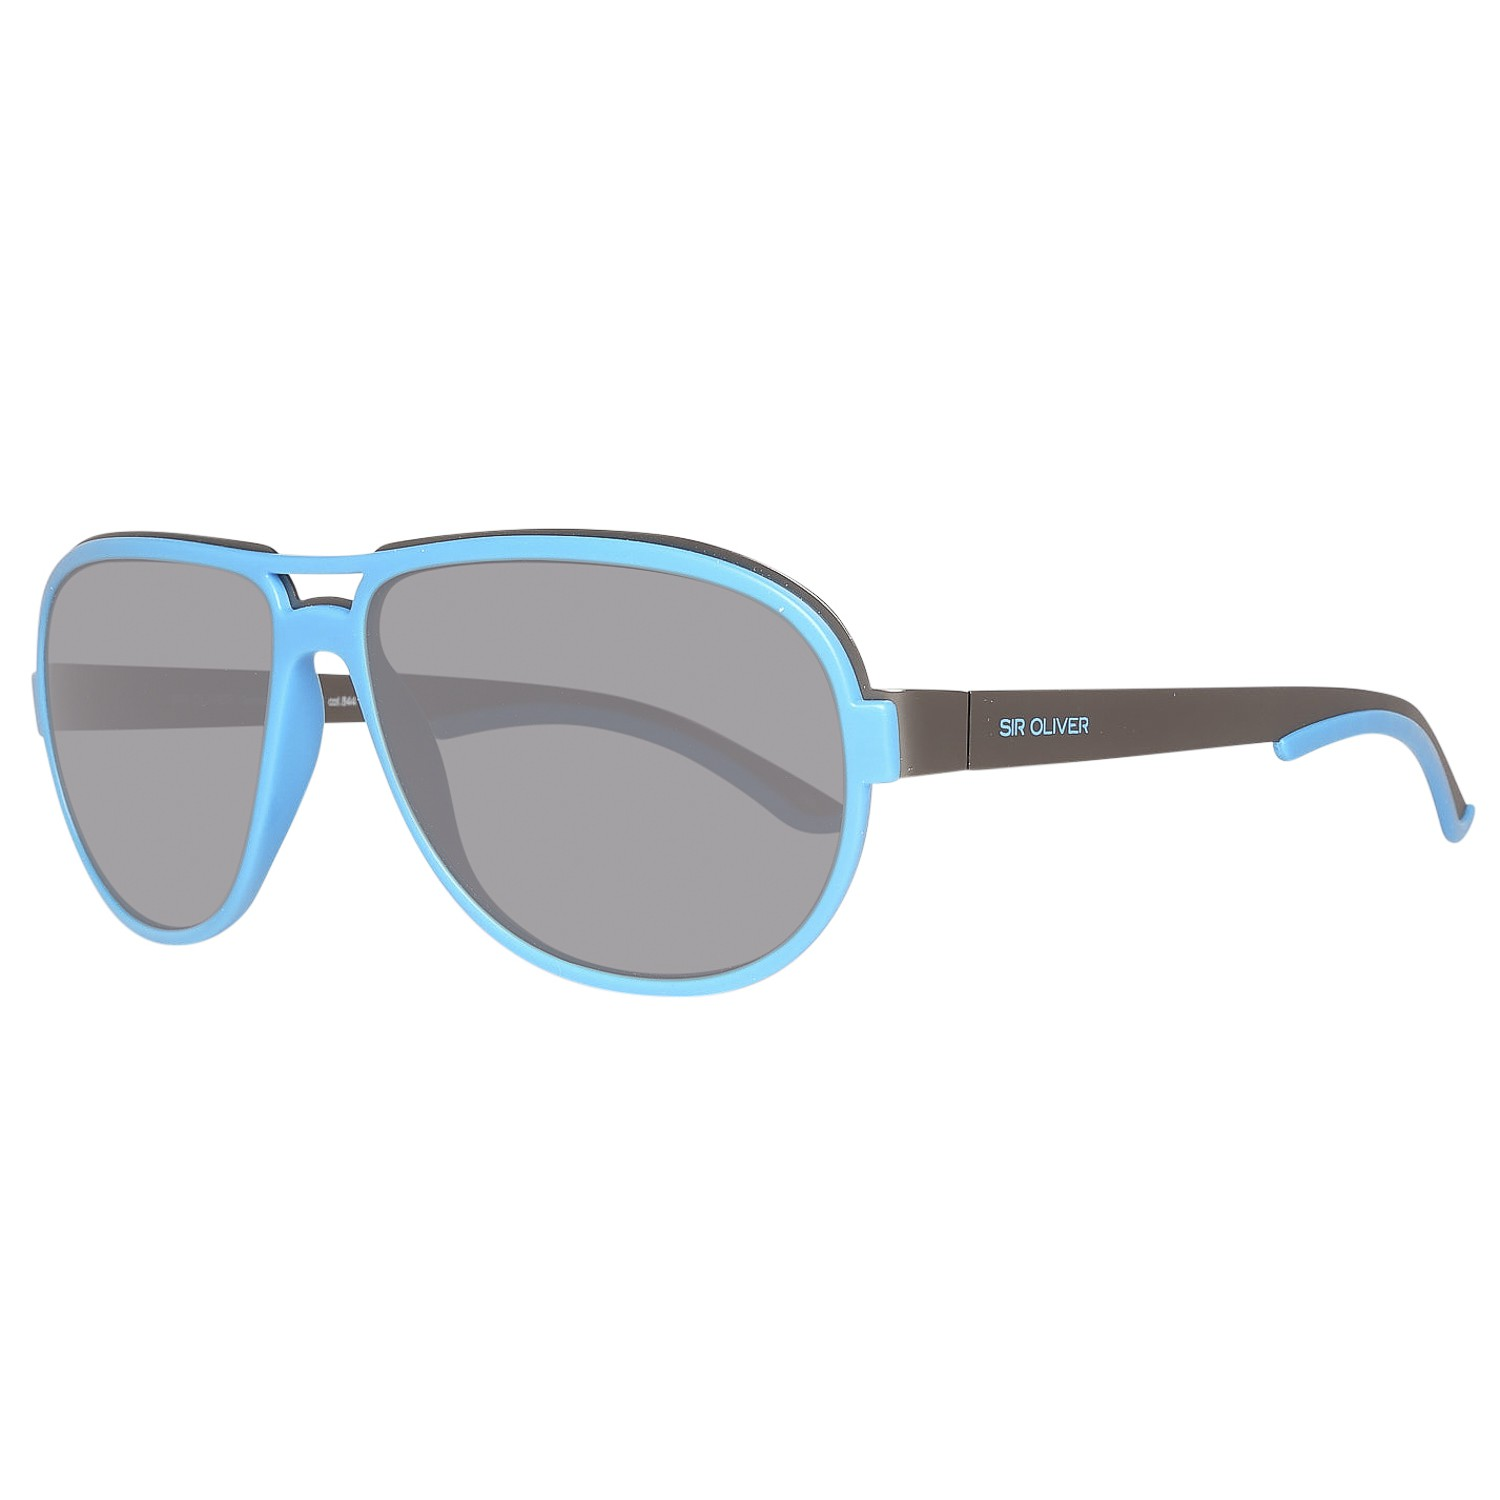 S. Oliver Sunglasses 99924 844 Blue